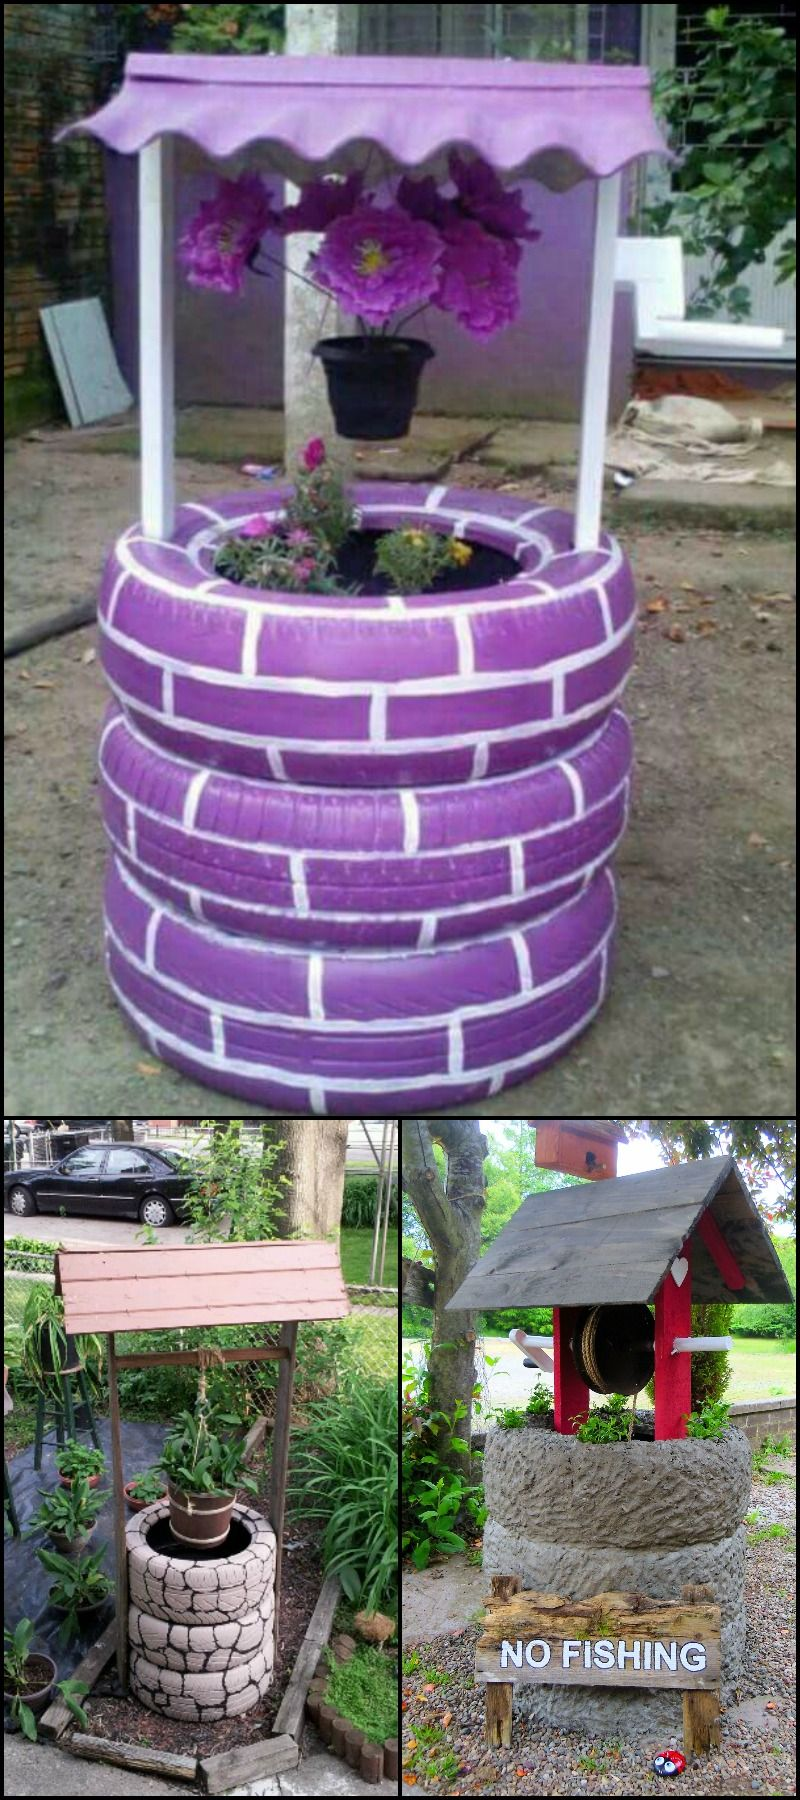 Make A Wish In Your Own Garden With This Wishing Well Planter Made From Recycled Tires It Makes Great Decor And Its So Easy To